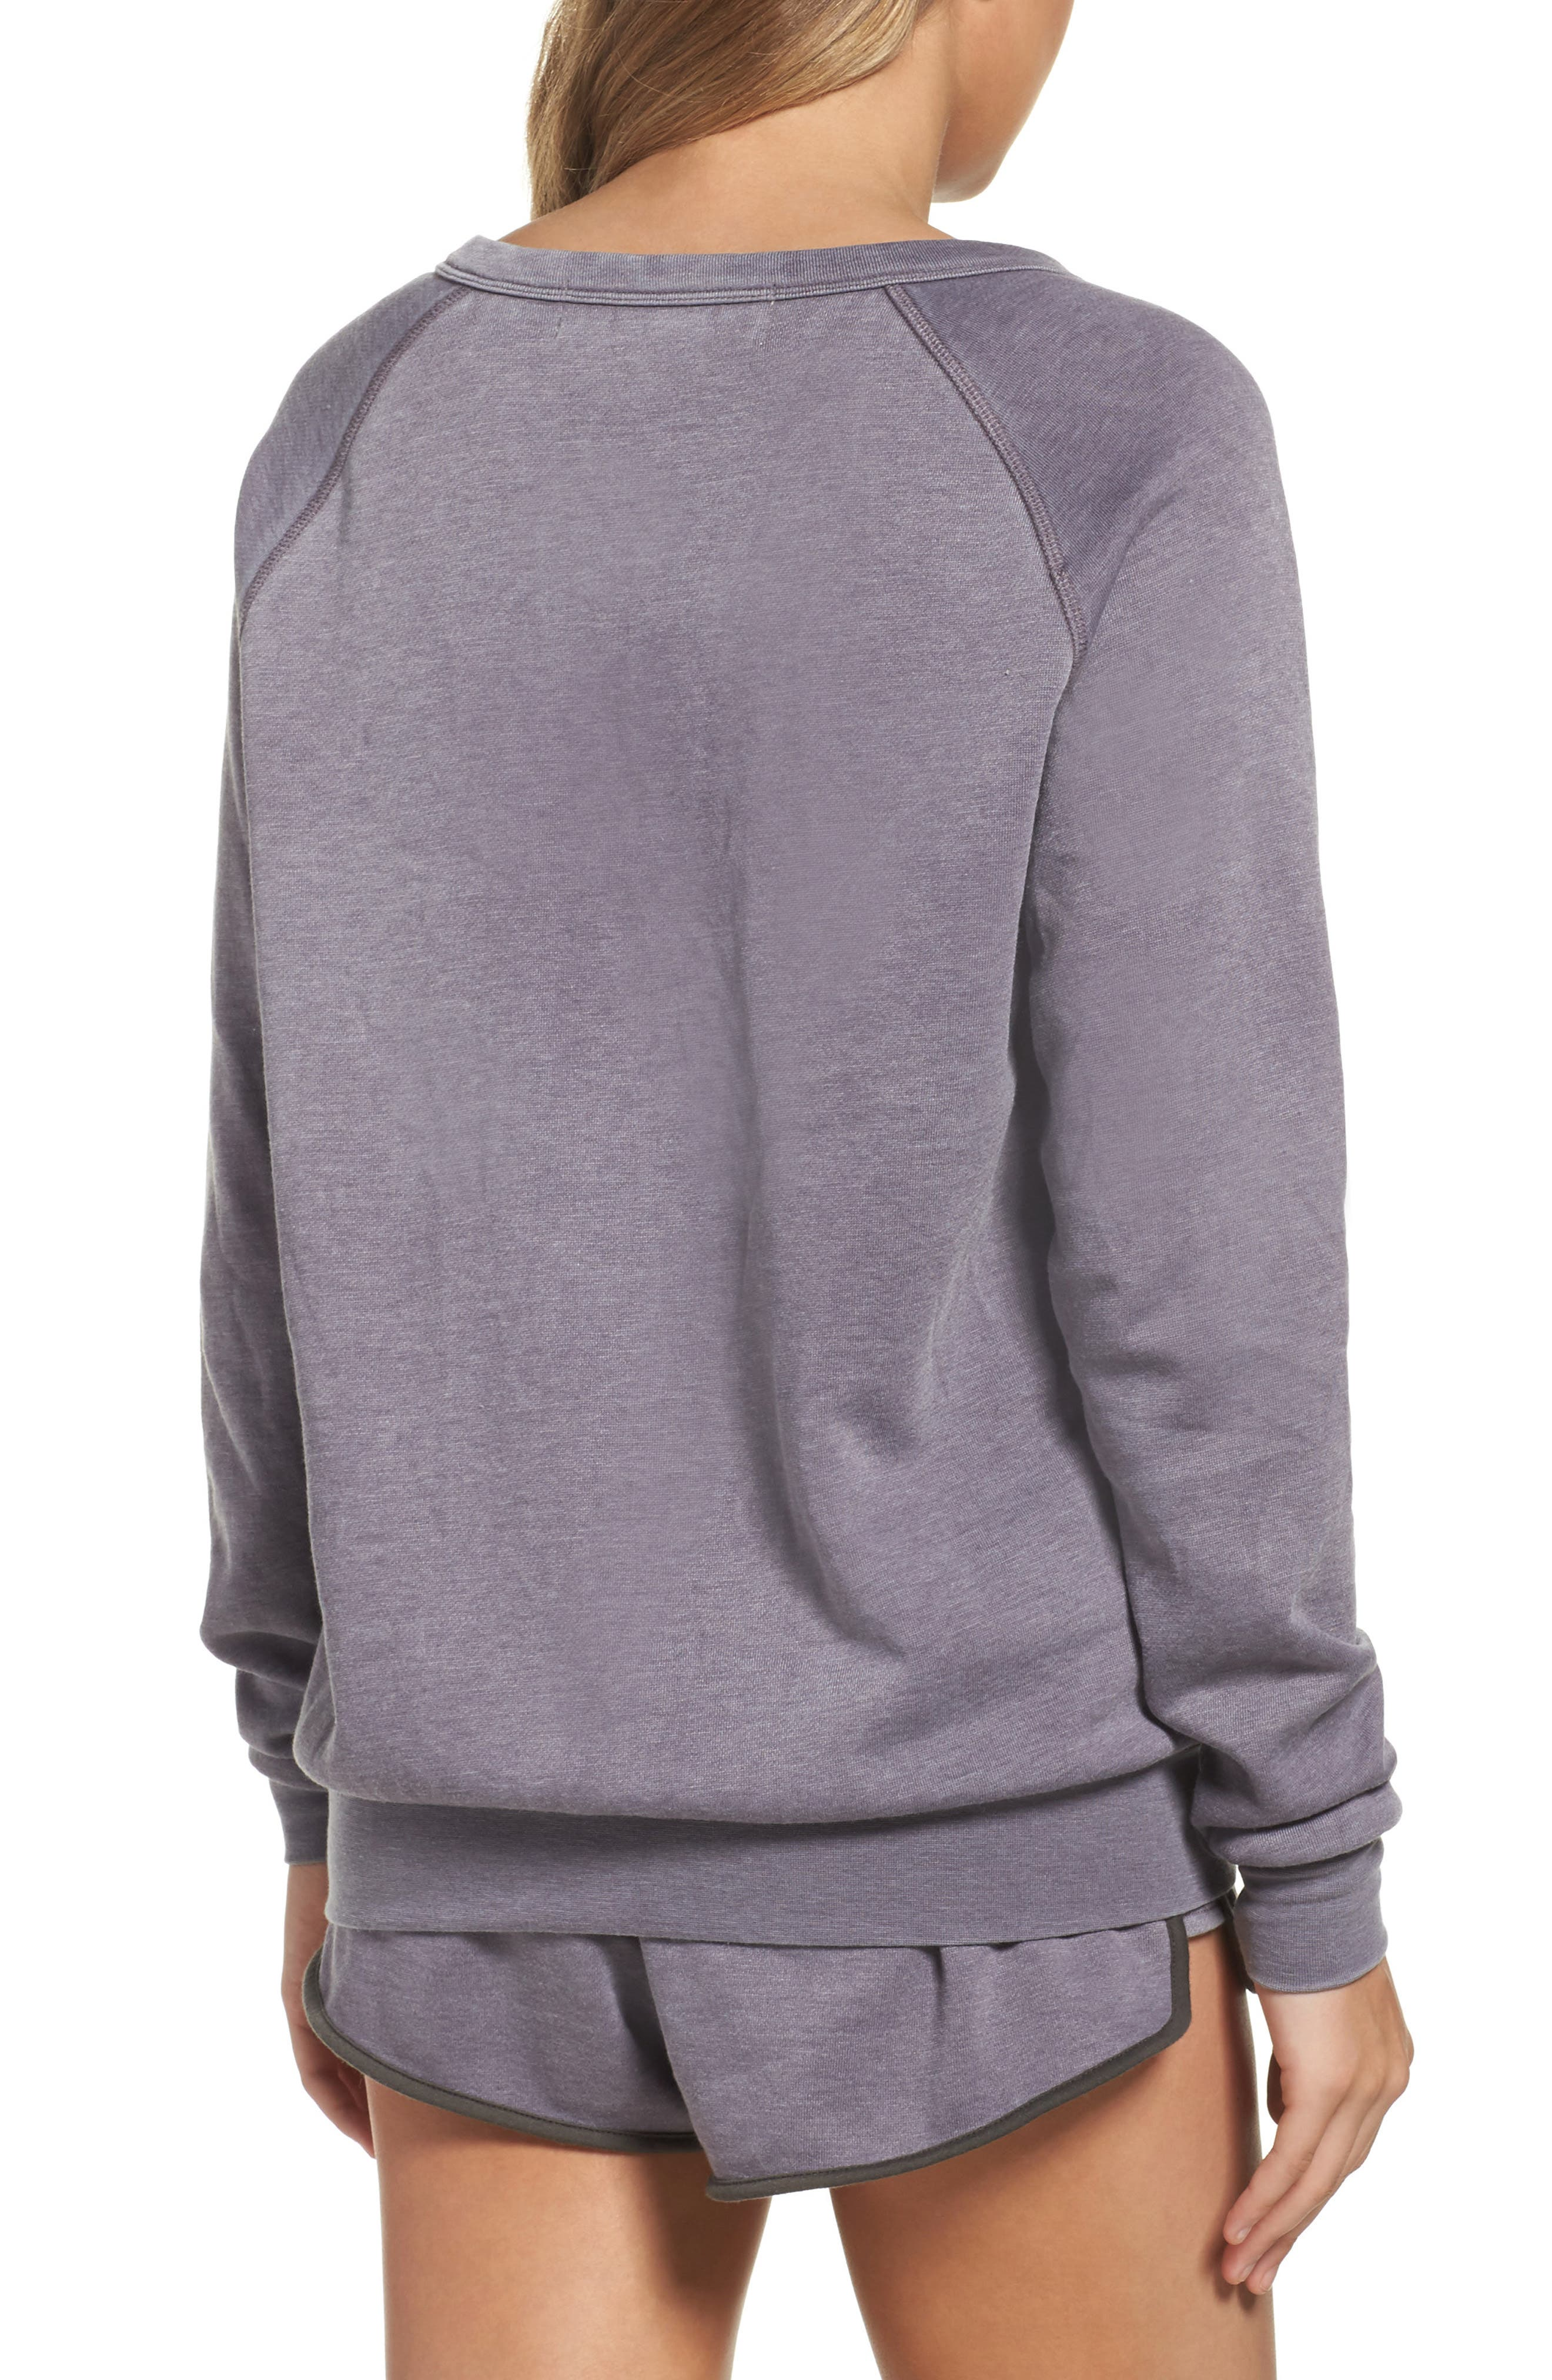 THE LAUNDRY ROOM,                             And Then Brunch Sweatshirt,                             Alternate thumbnail 2, color,                             020